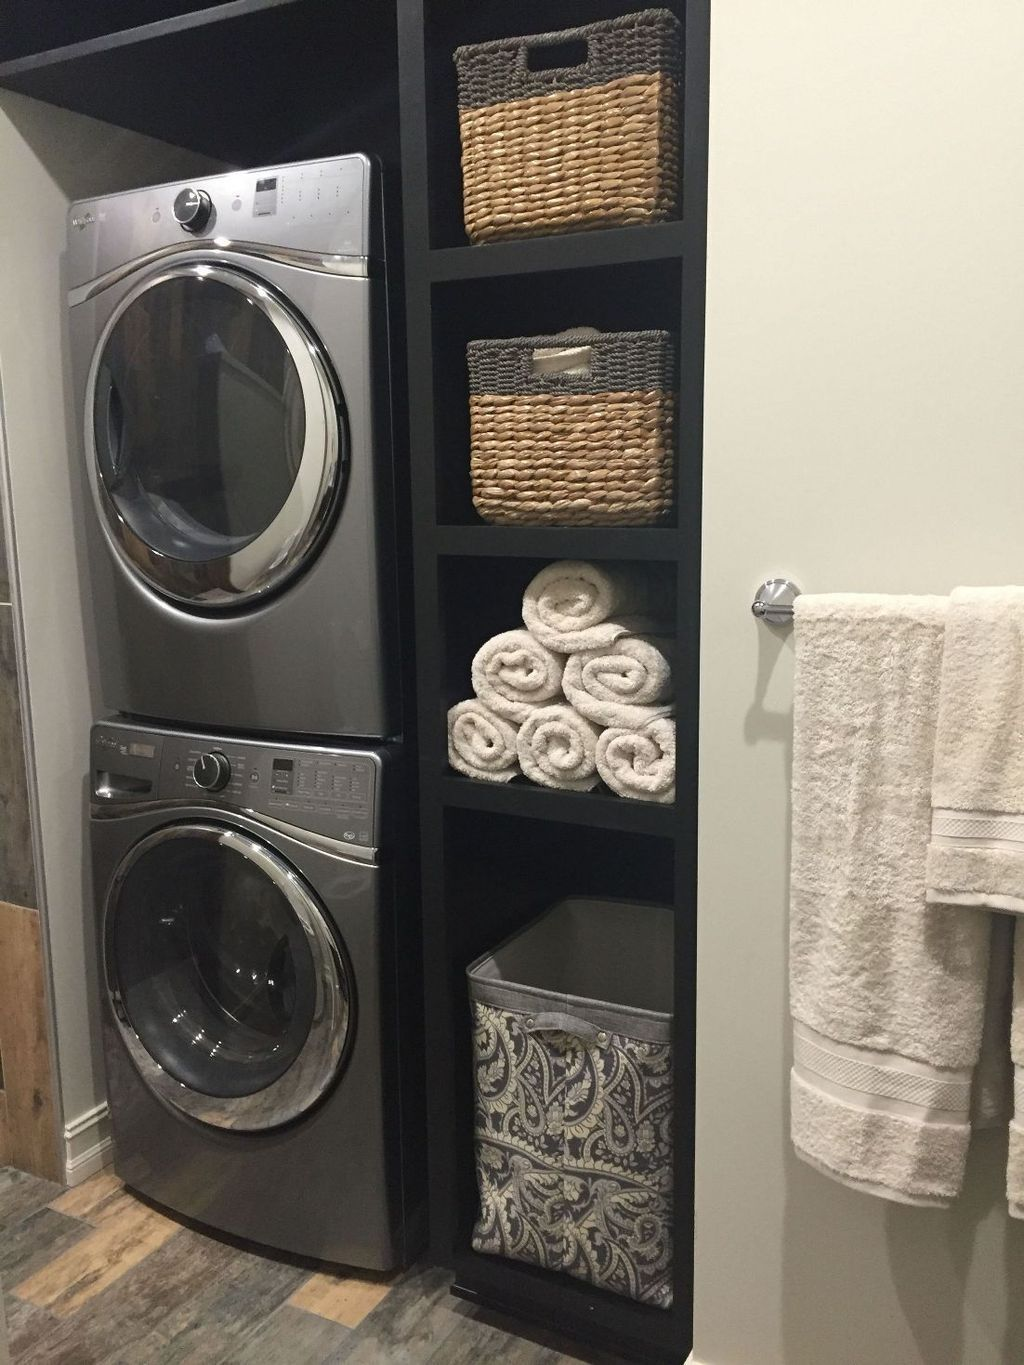 39 Perfect Laundry Room Designs Ideas For Small Space images